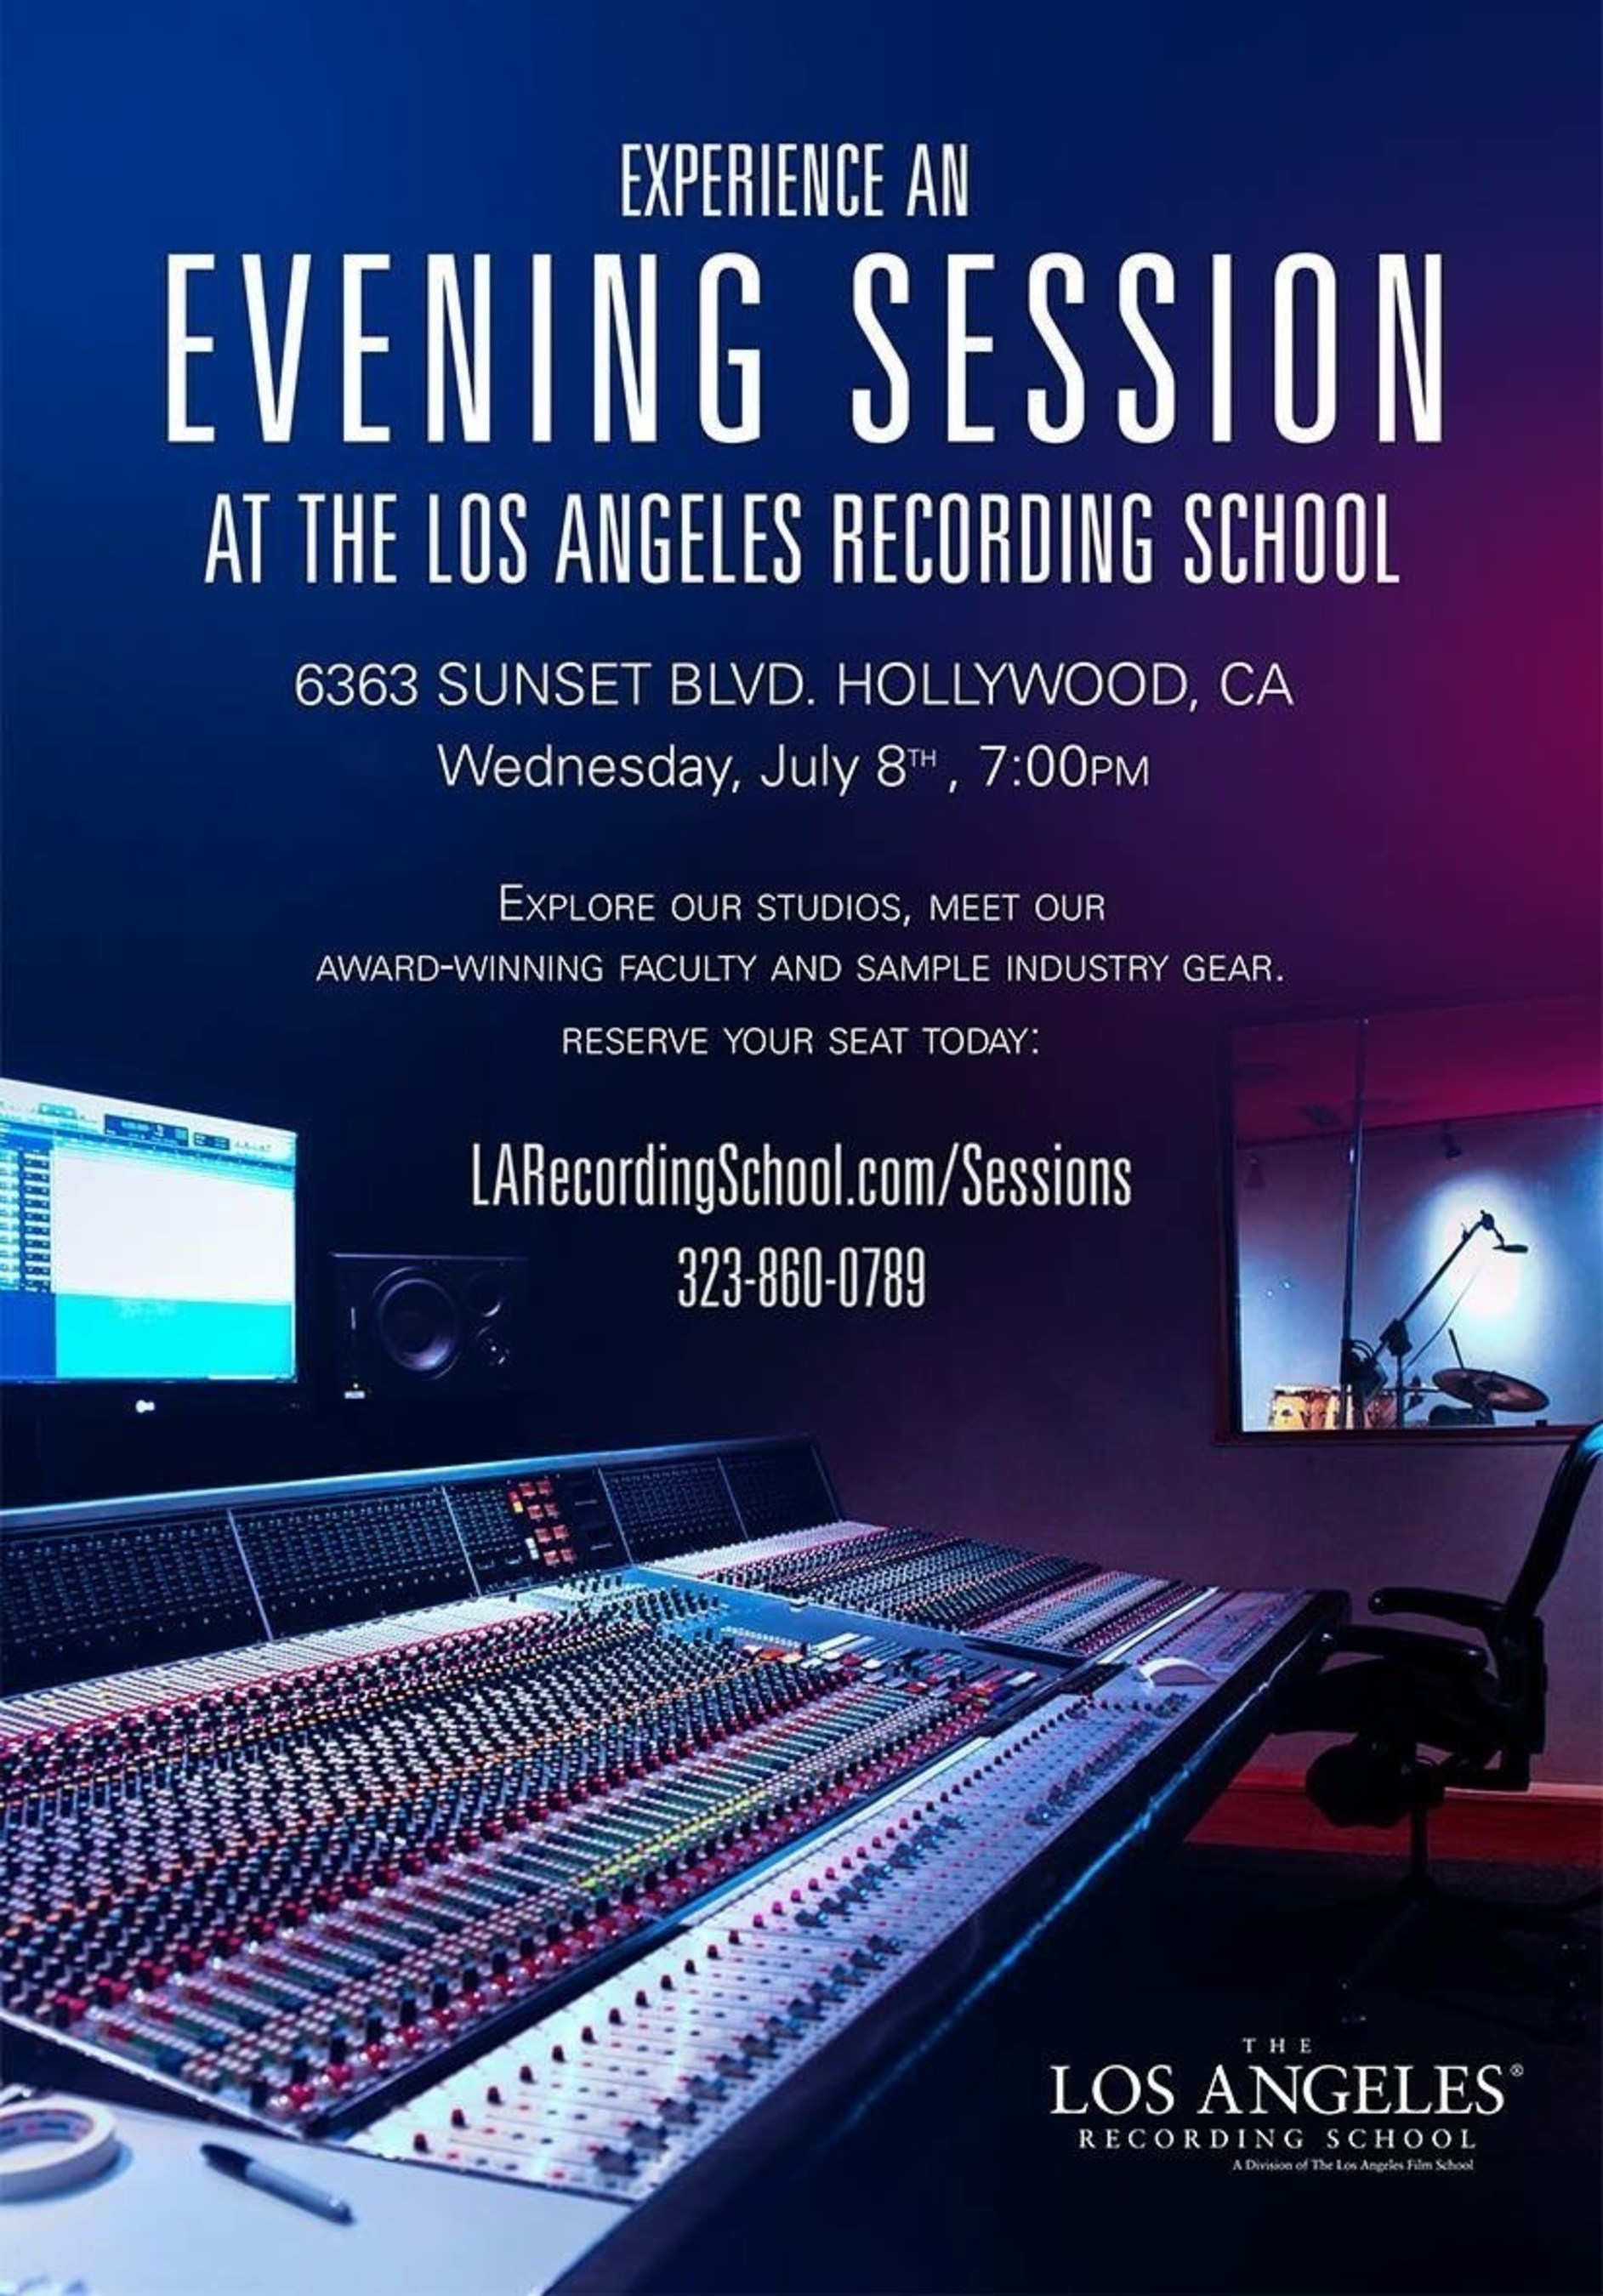 The Los Angeles Recording School Celebrates 30th Anniversary Launches 'An Evening Session'